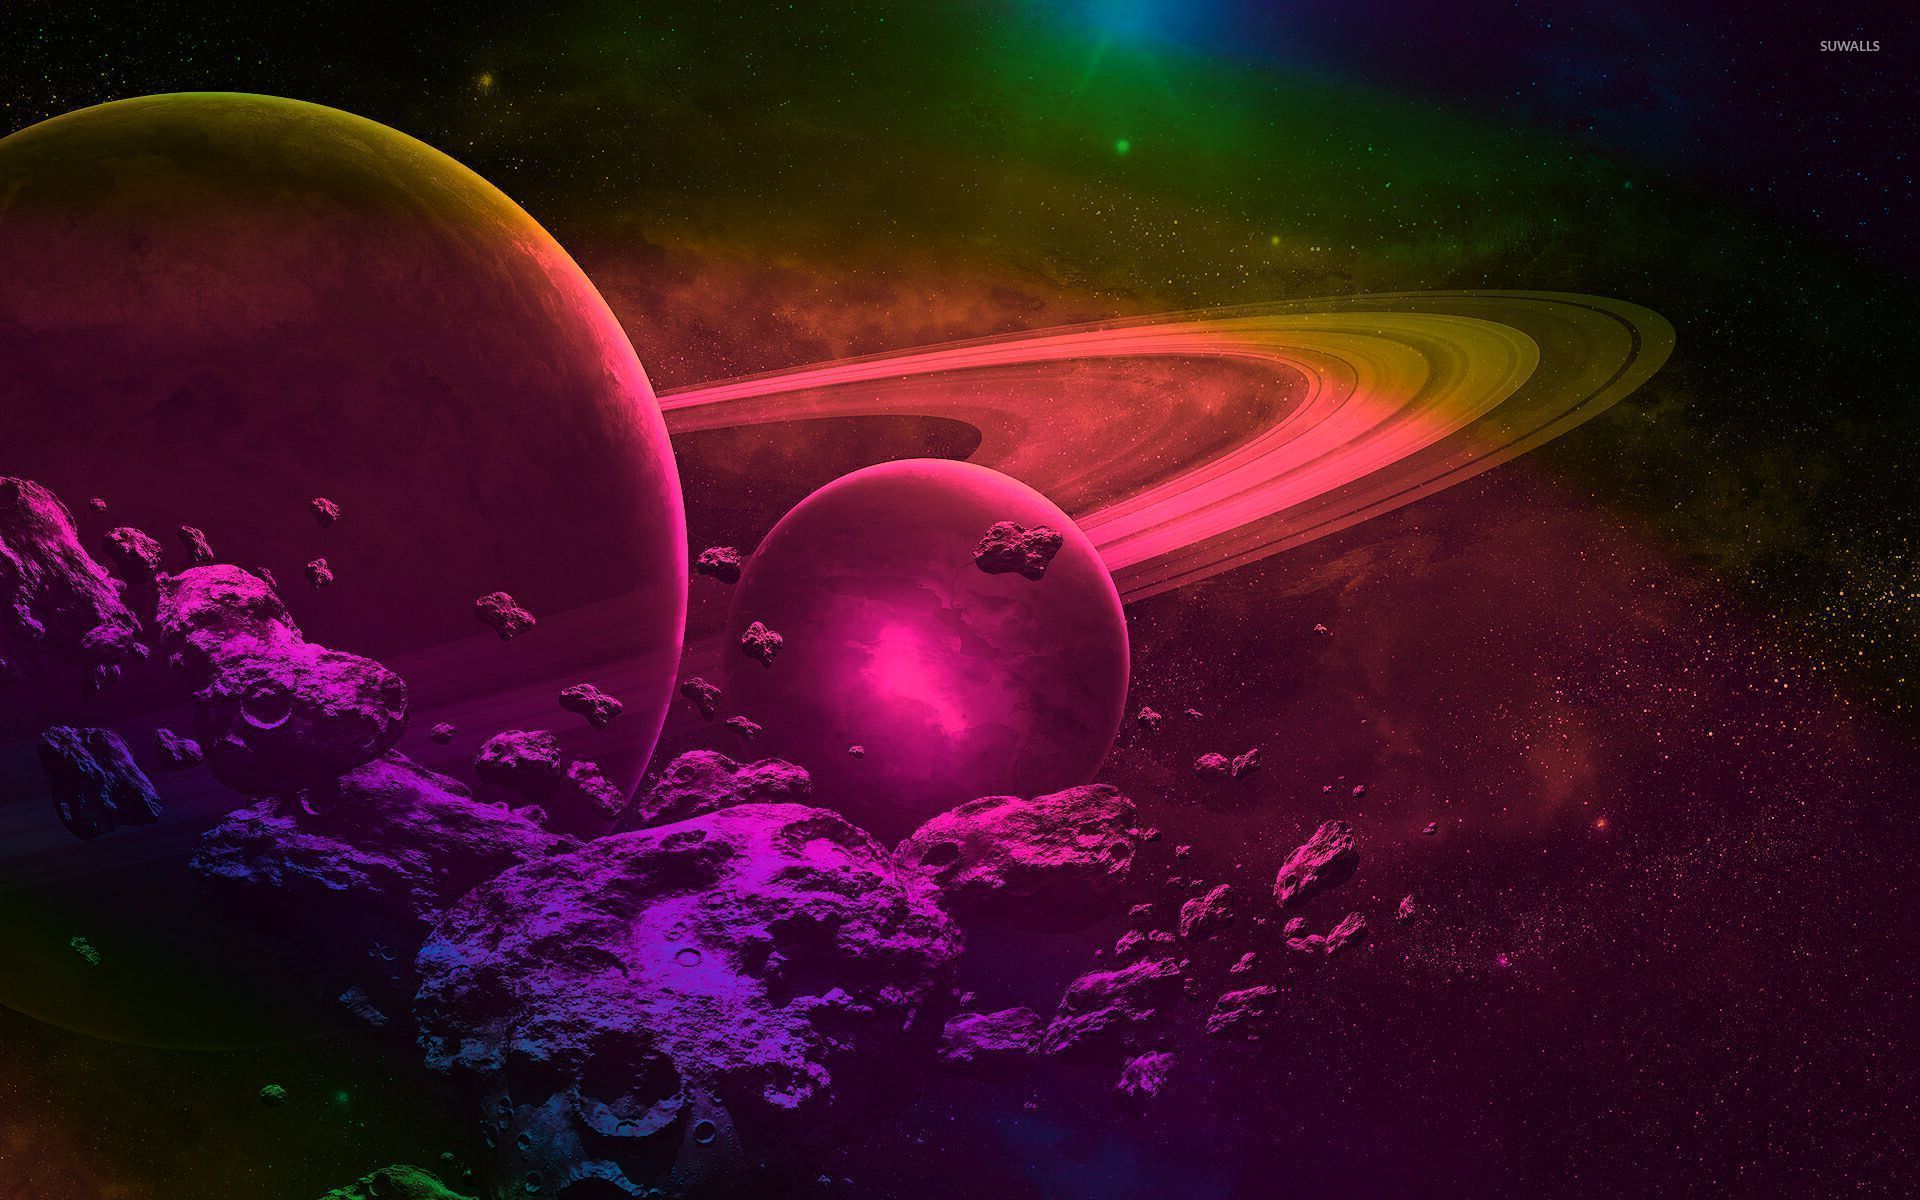 Pink and purple space nature wallpaper | 1920x1200 | 1259024 | WallpaperUP